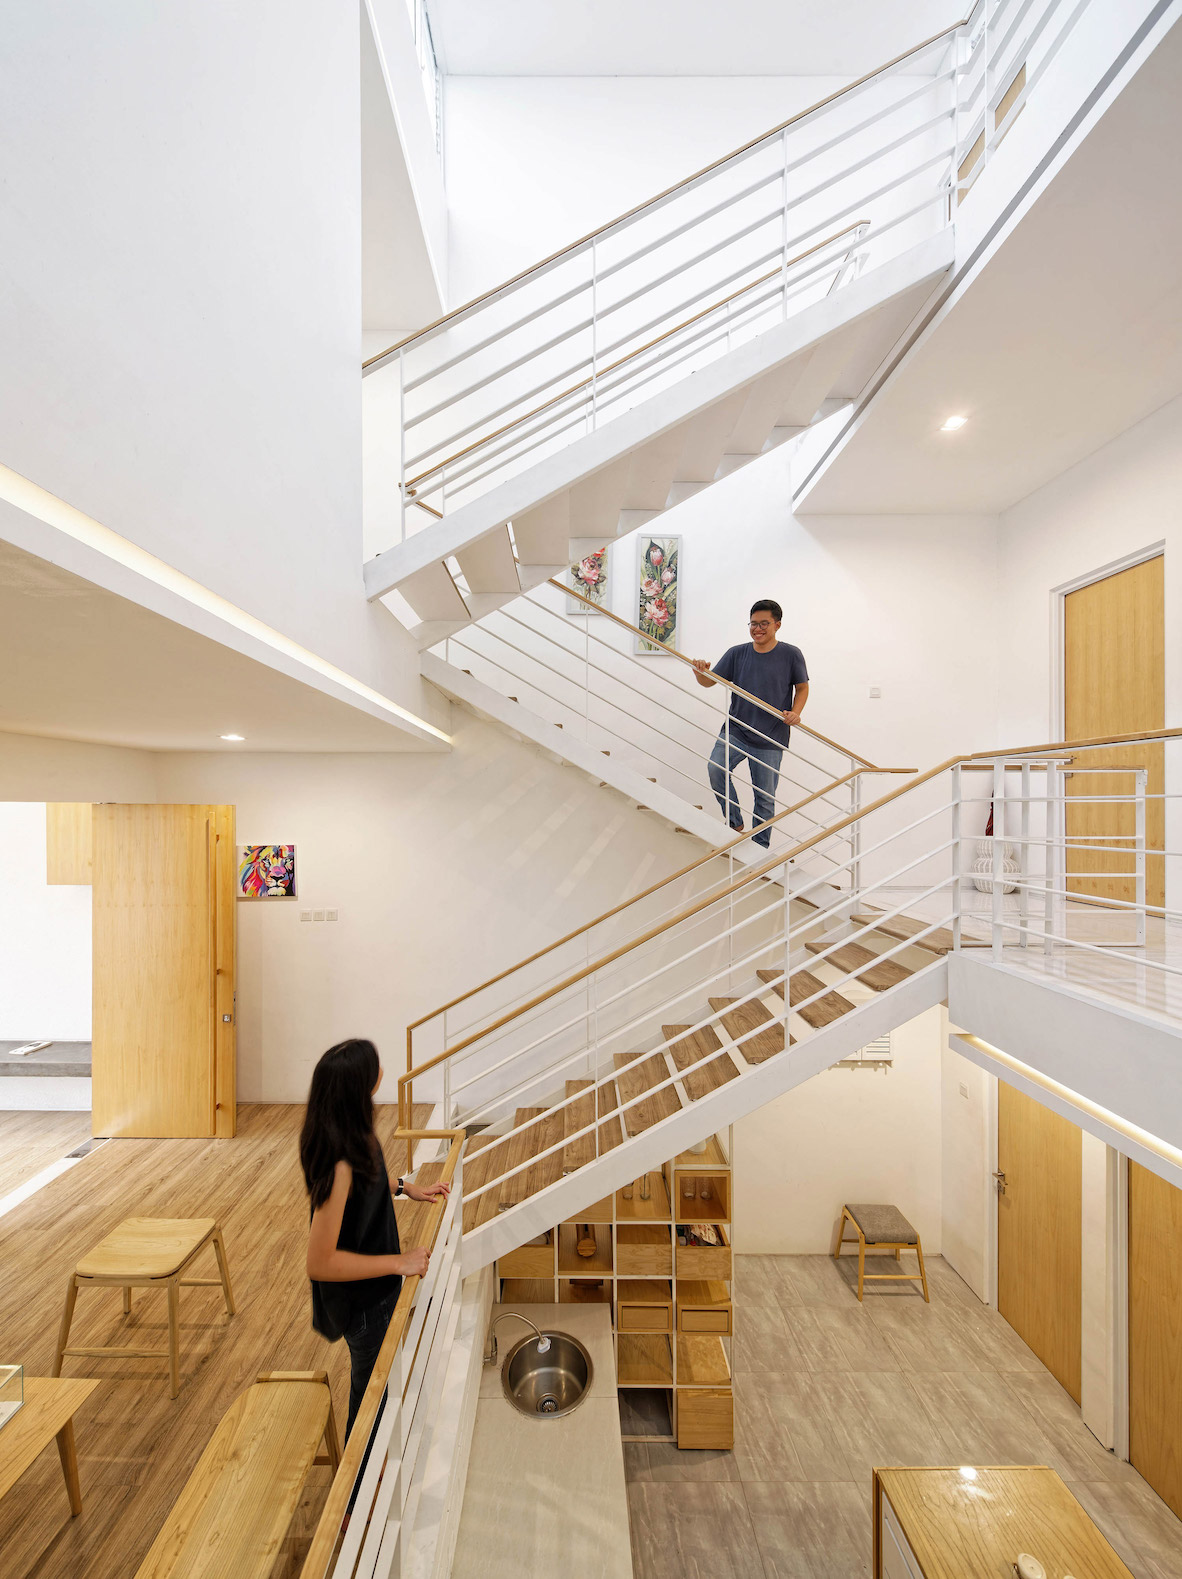 splow-house-delution-architect-jakarta-architecture-residential-houses-indonesia_dezeen_2364_col_8.jpg